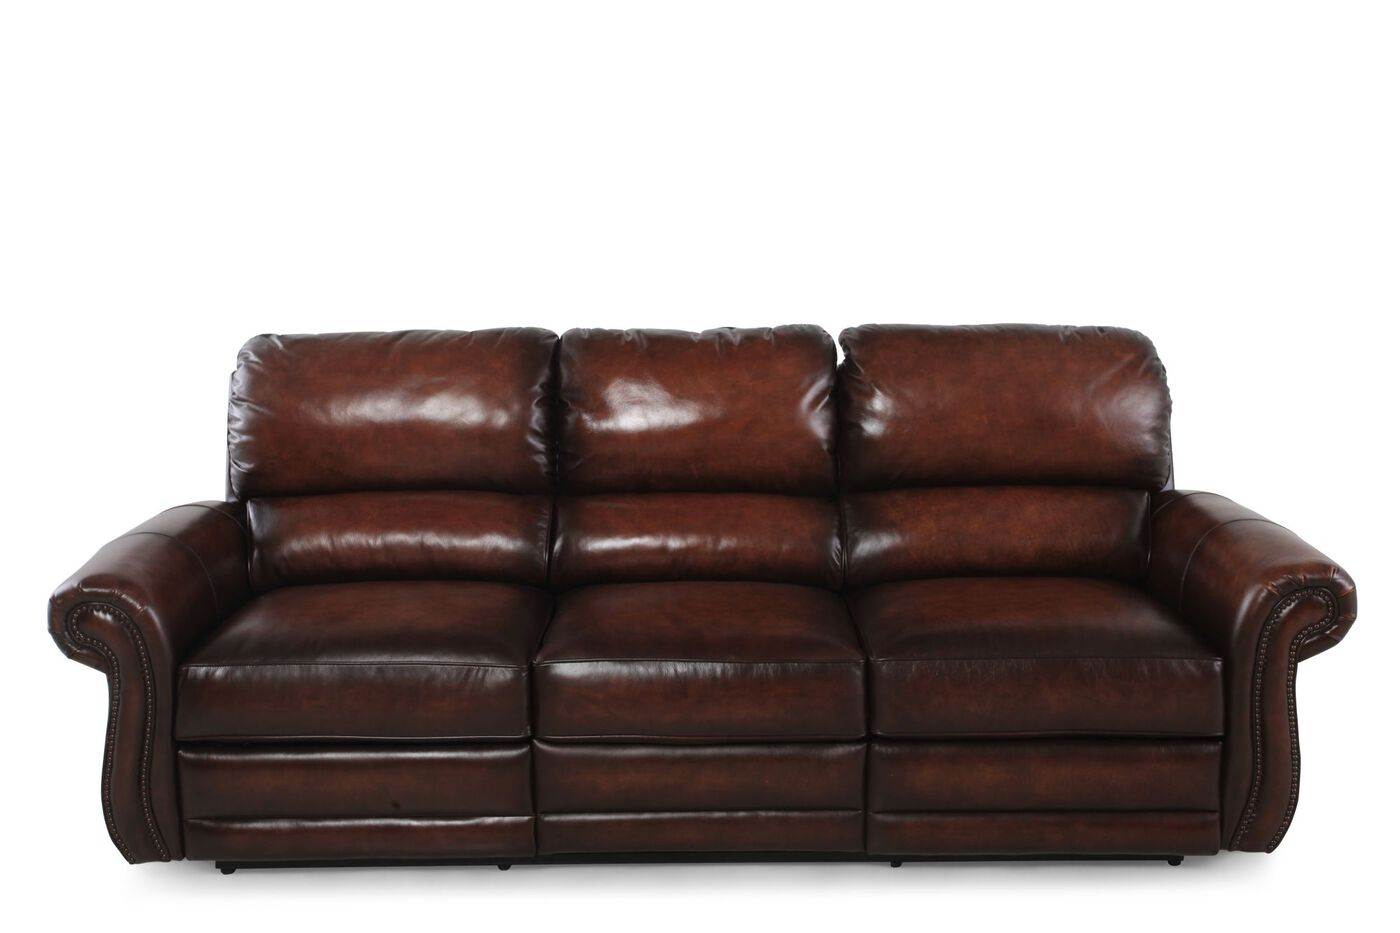 mathis brothers bernhardt leather sofas refil sofa